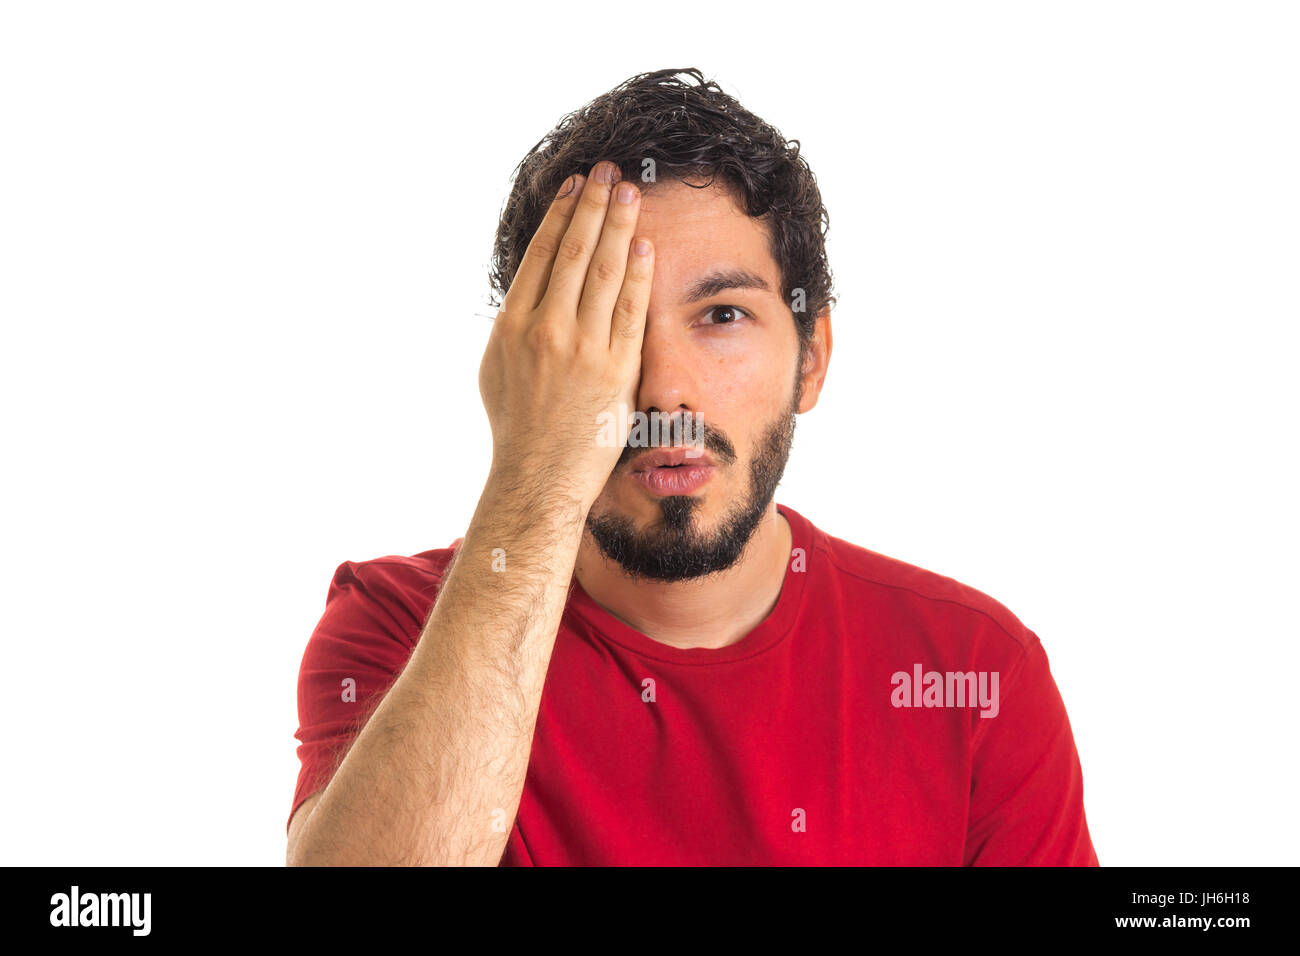 The hand covers one eye of handsome man. eye examination ophthalmology concept in white background. - Stock Image